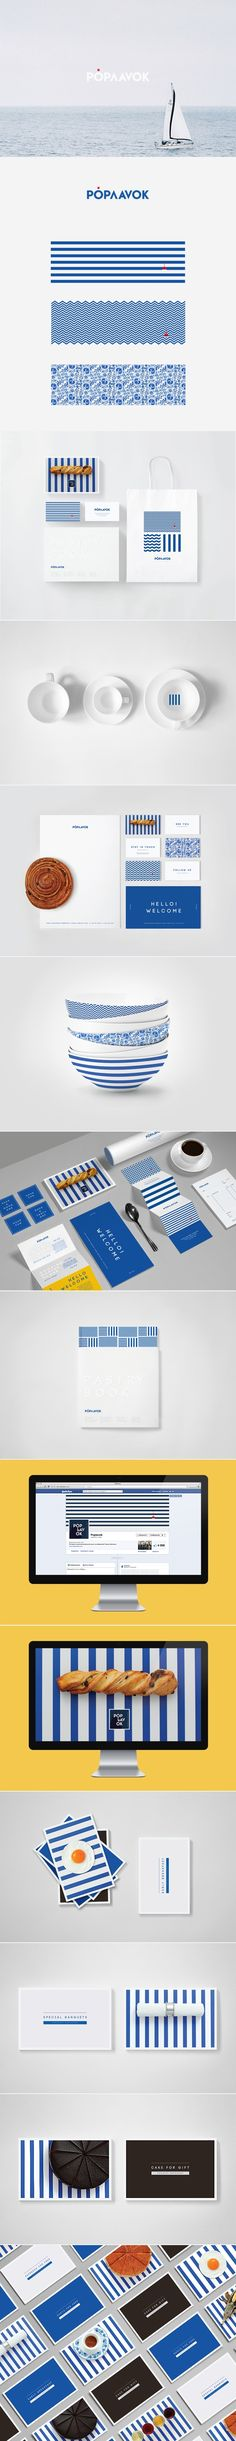 Poplavok (Russian restaurant on the water) | Ira Sm. Beautiful blue #identity #packaging branding PD